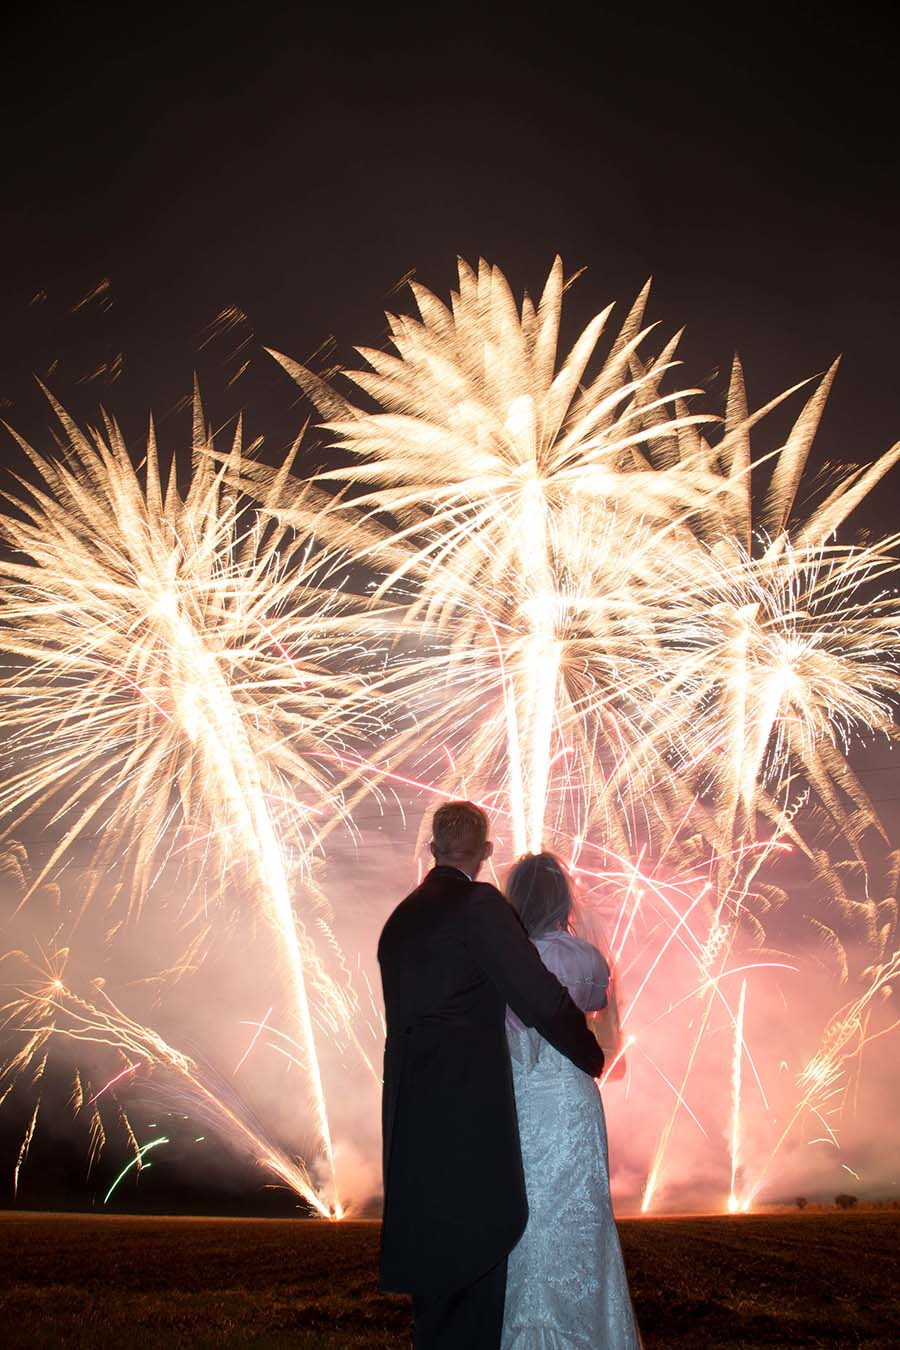 Bride And Groom Watching Wedding Fireworks